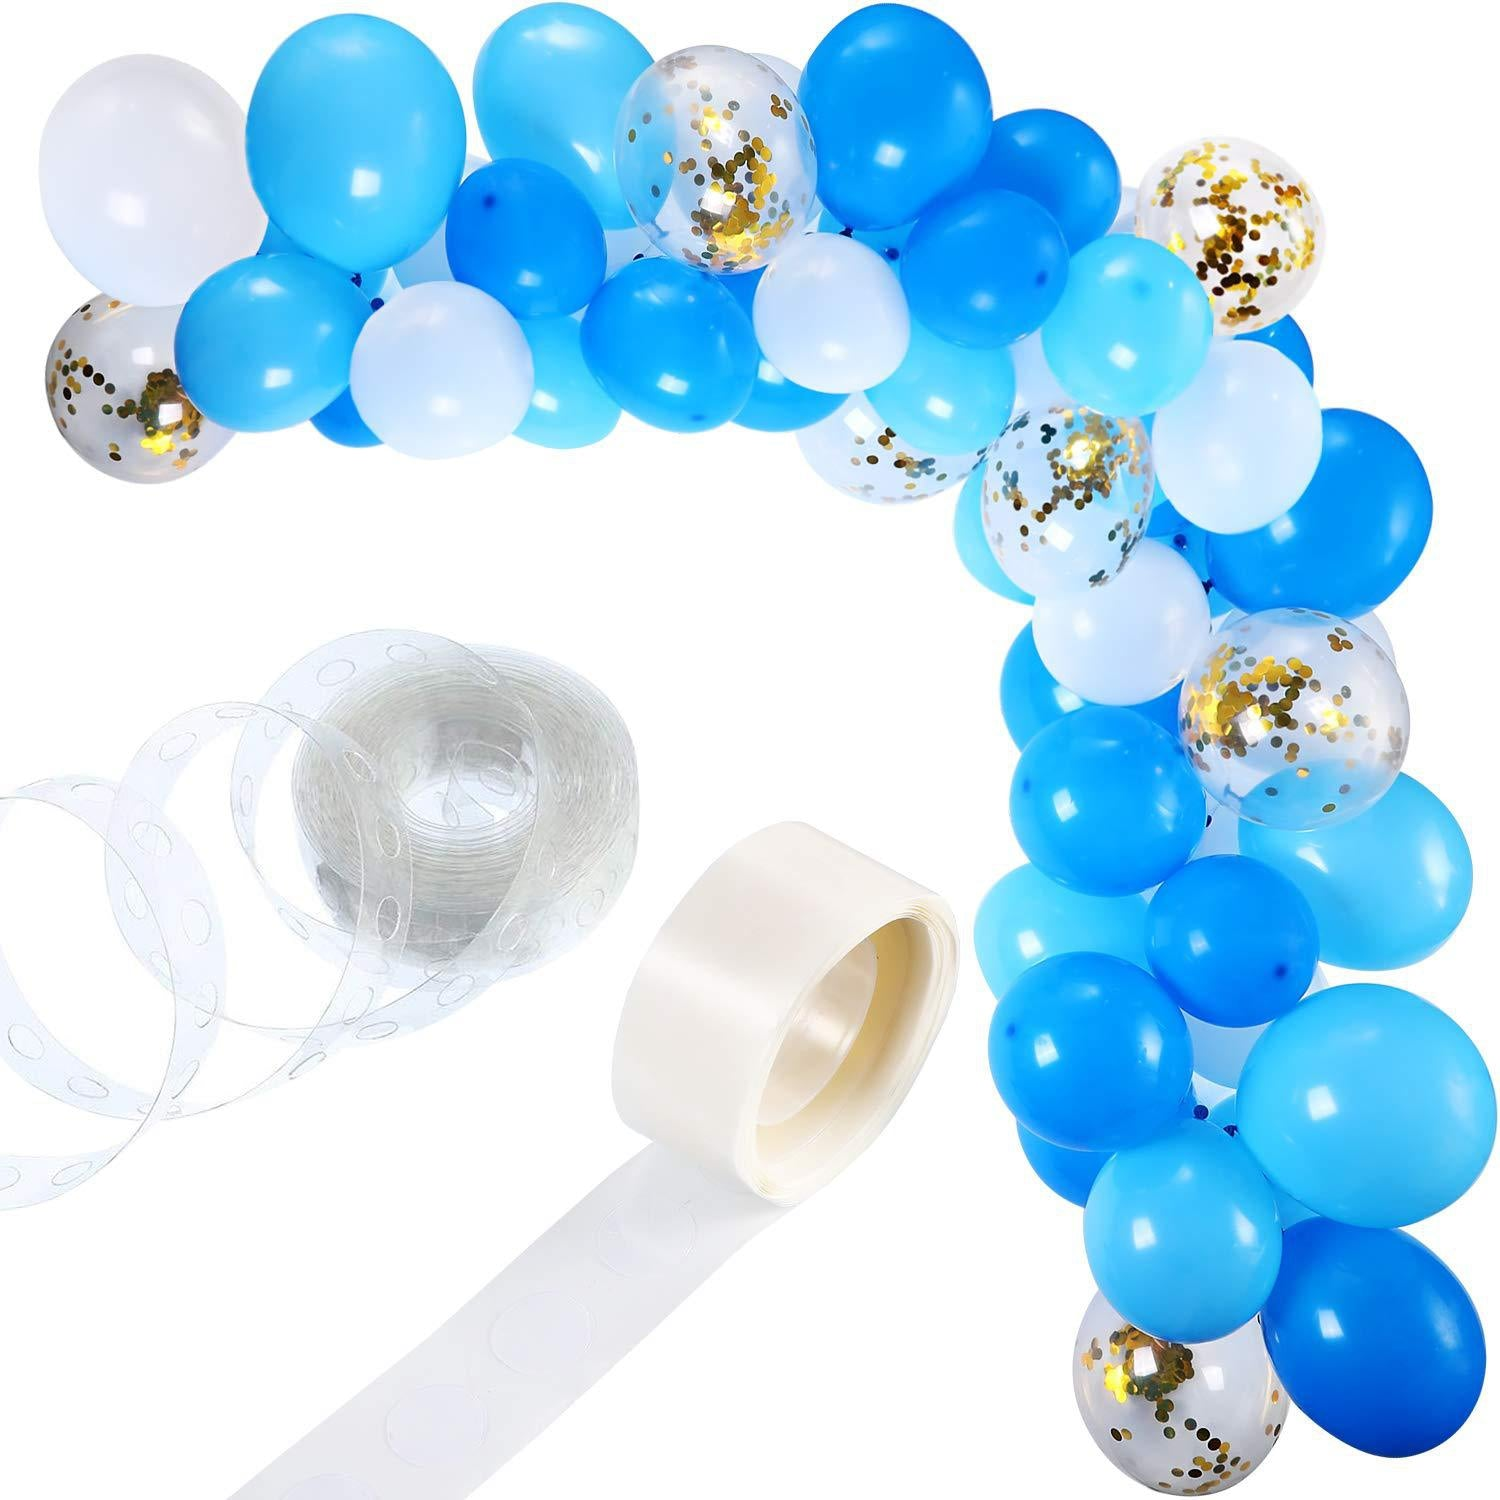 Balloon Set Balloon Garland Wedding Arch Birthday Party Creative Decorations